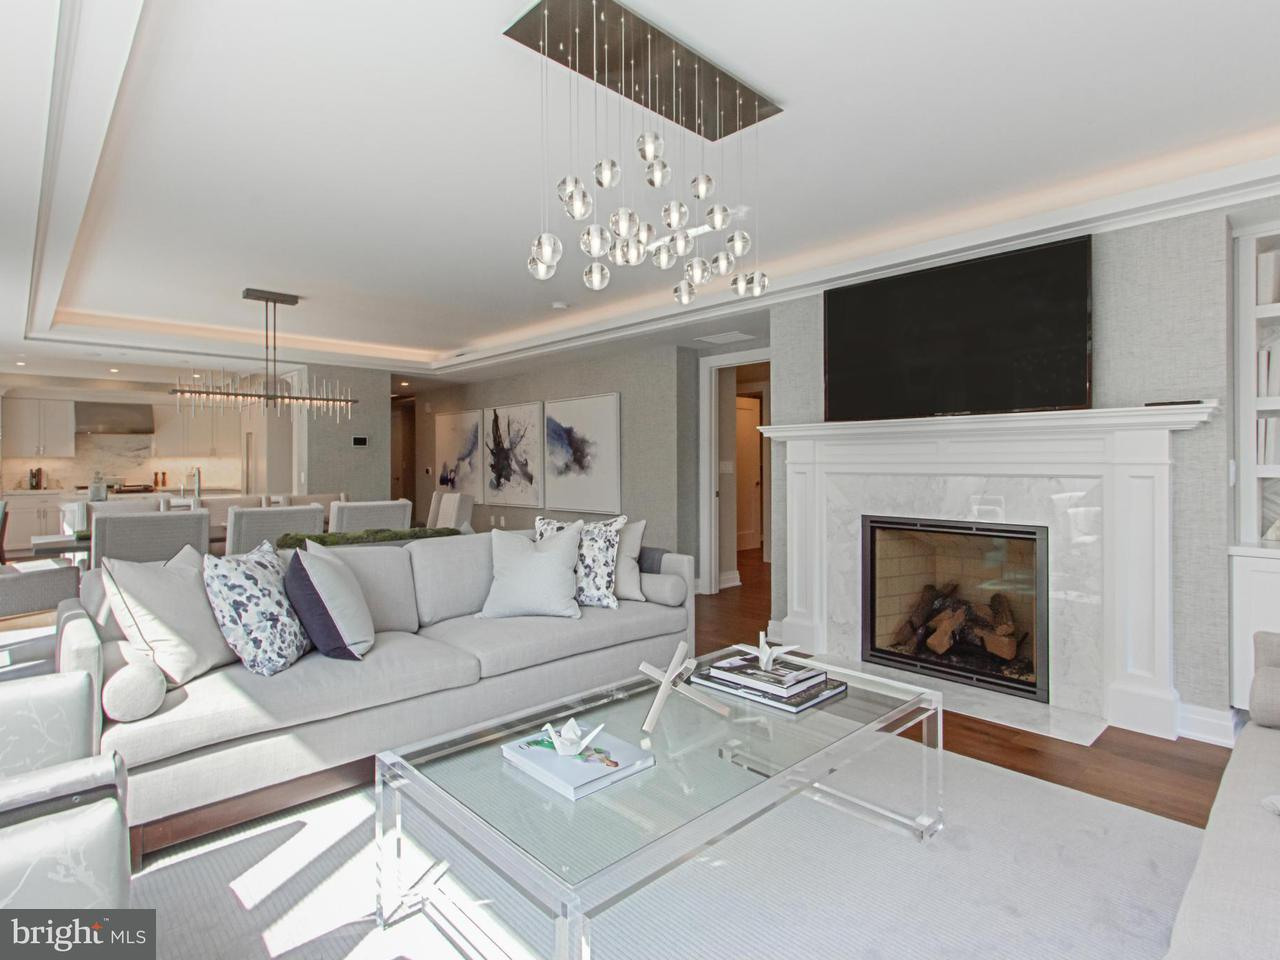 Single Family Home for Sale at 4901 HAMPDEN LN #201 4901 HAMPDEN LN #201 Bethesda, Maryland 20814 United States